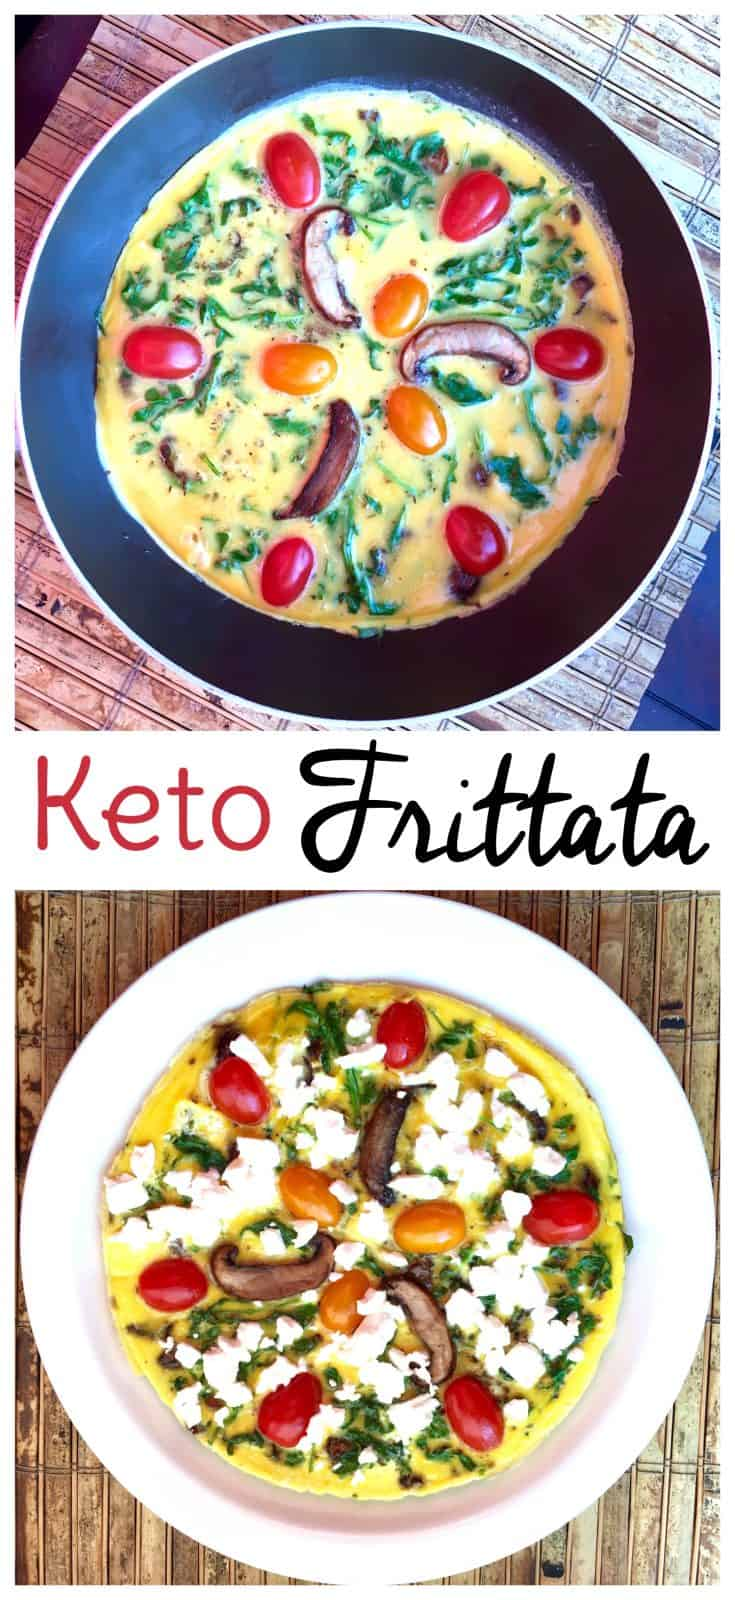 Looking for low carb meals that satisfy? Try this keto frittata recipe! It makes a delicious keto breakfast obviously, but you may want to enjoy it for lunch or dinner too. #keto #frittata #lowcarb